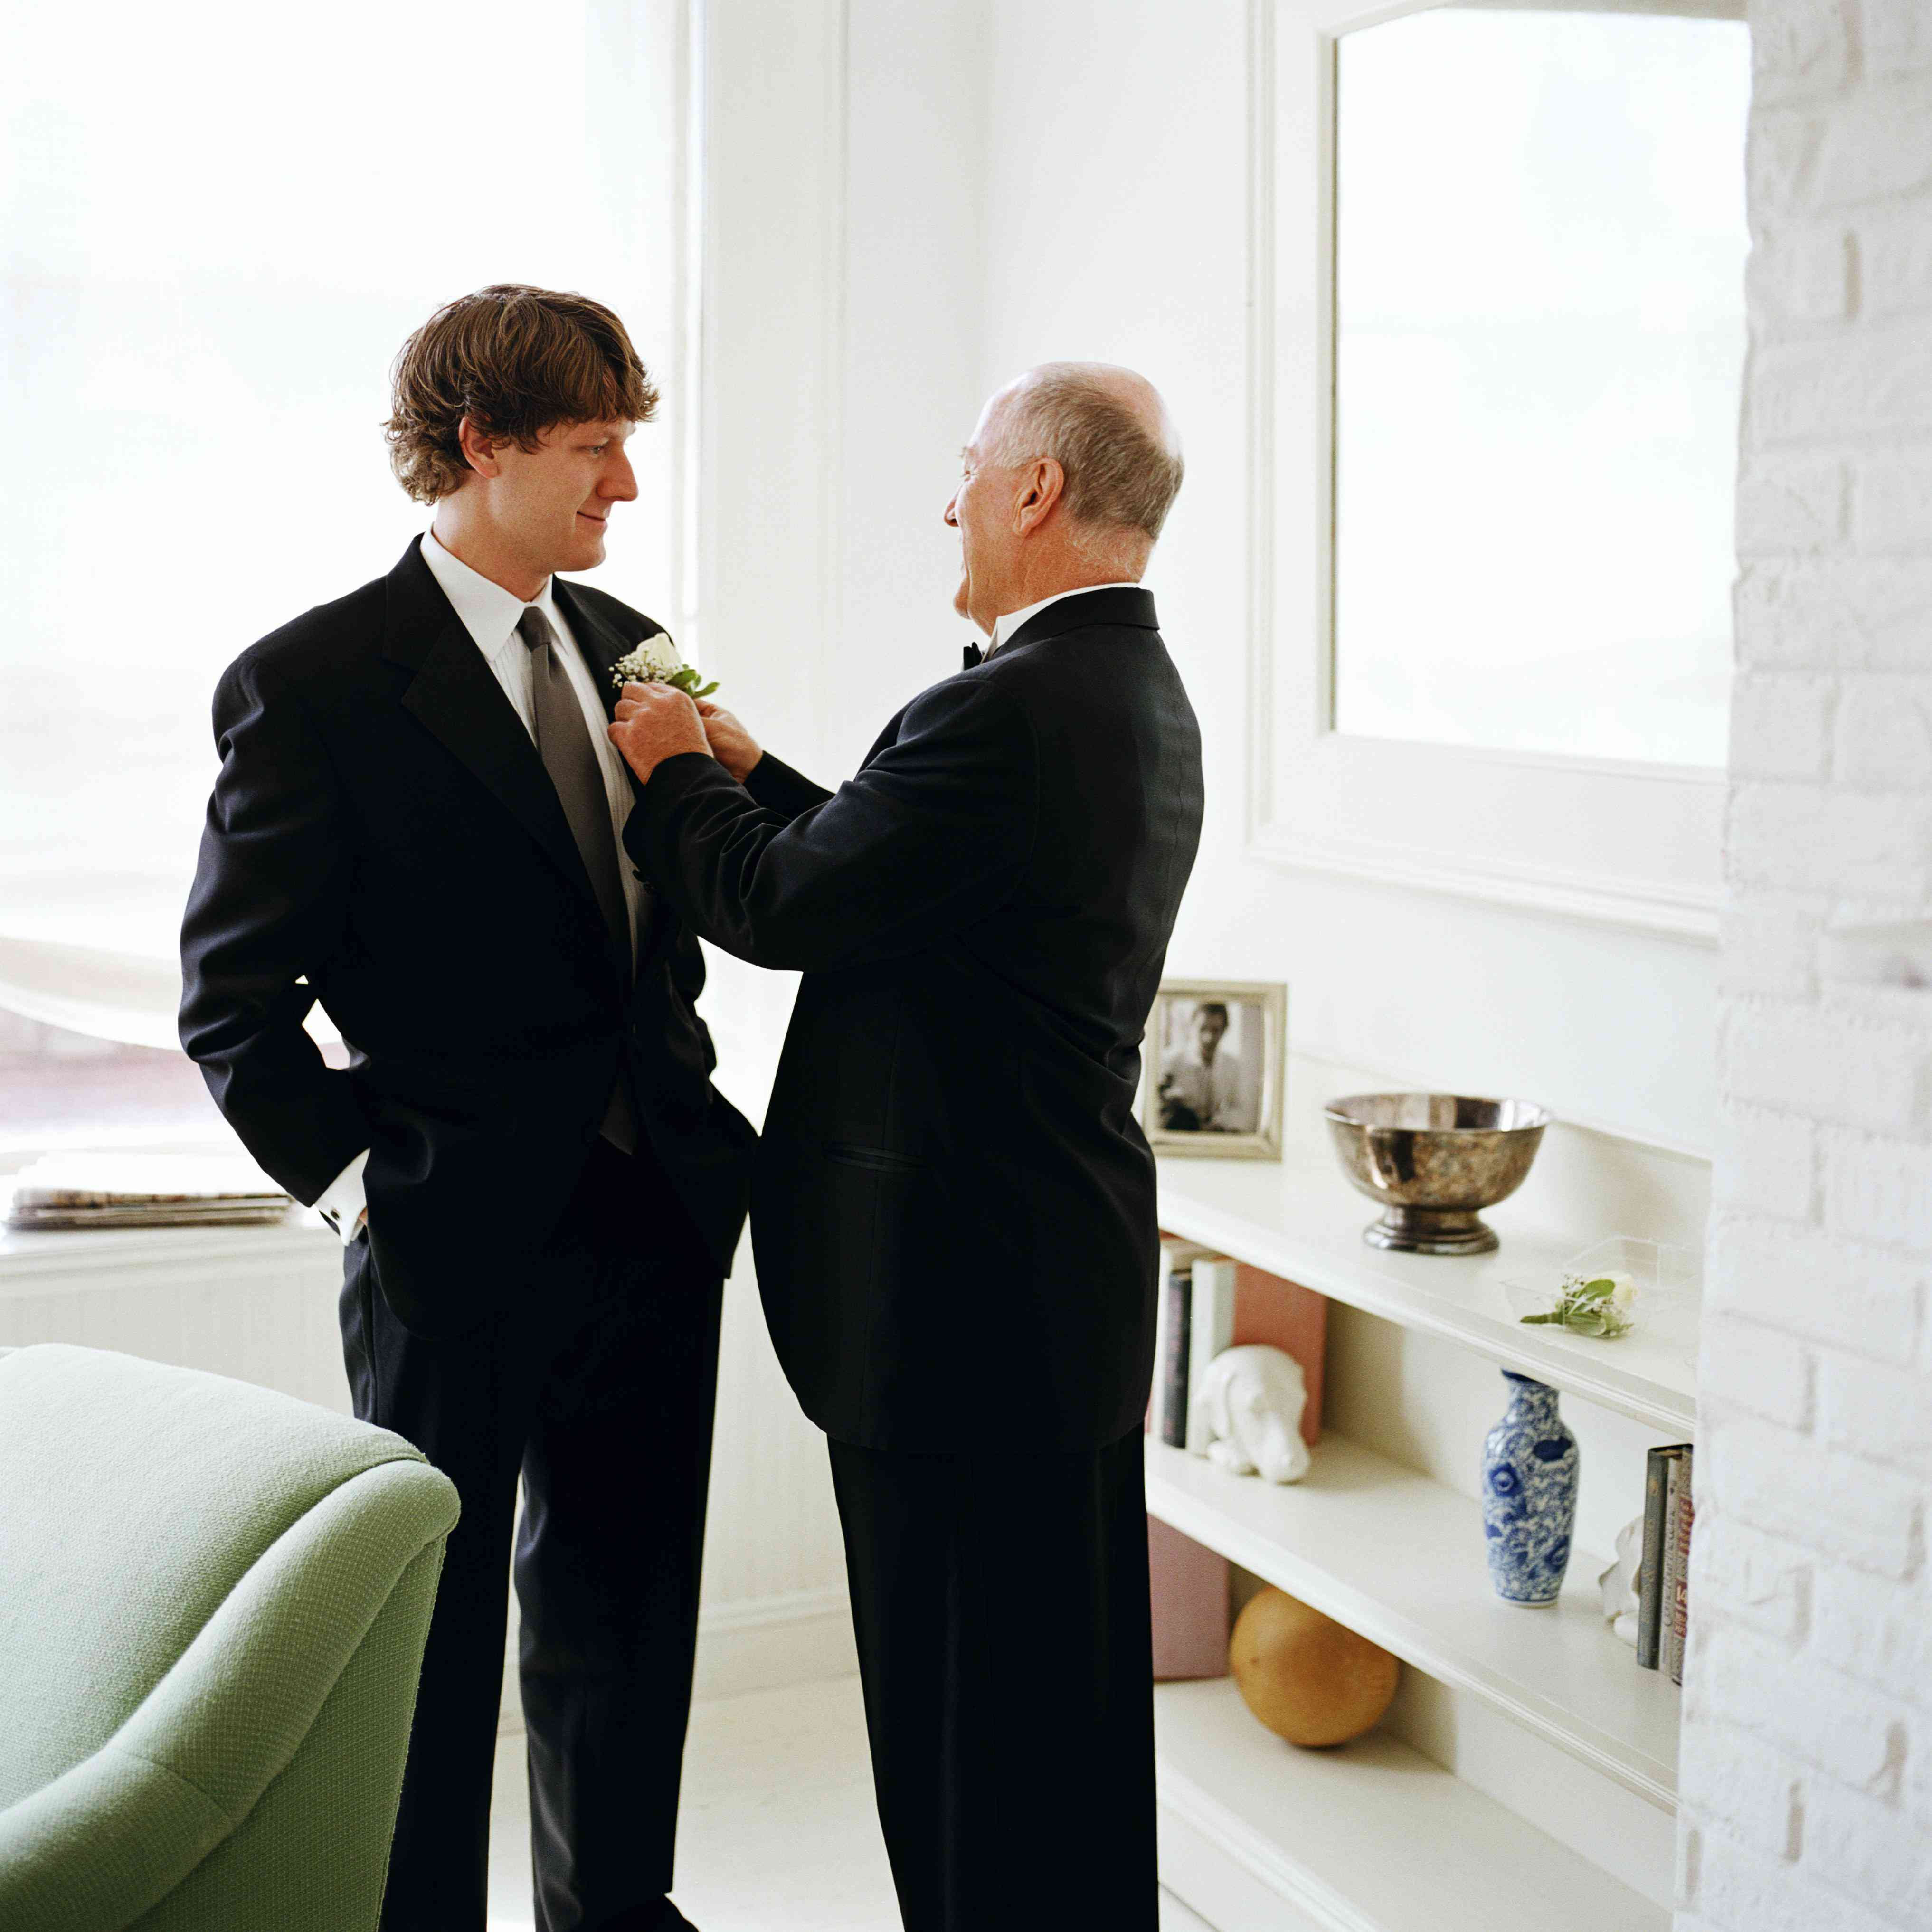 8 Father of the Groom Duties and Responsibilities for the